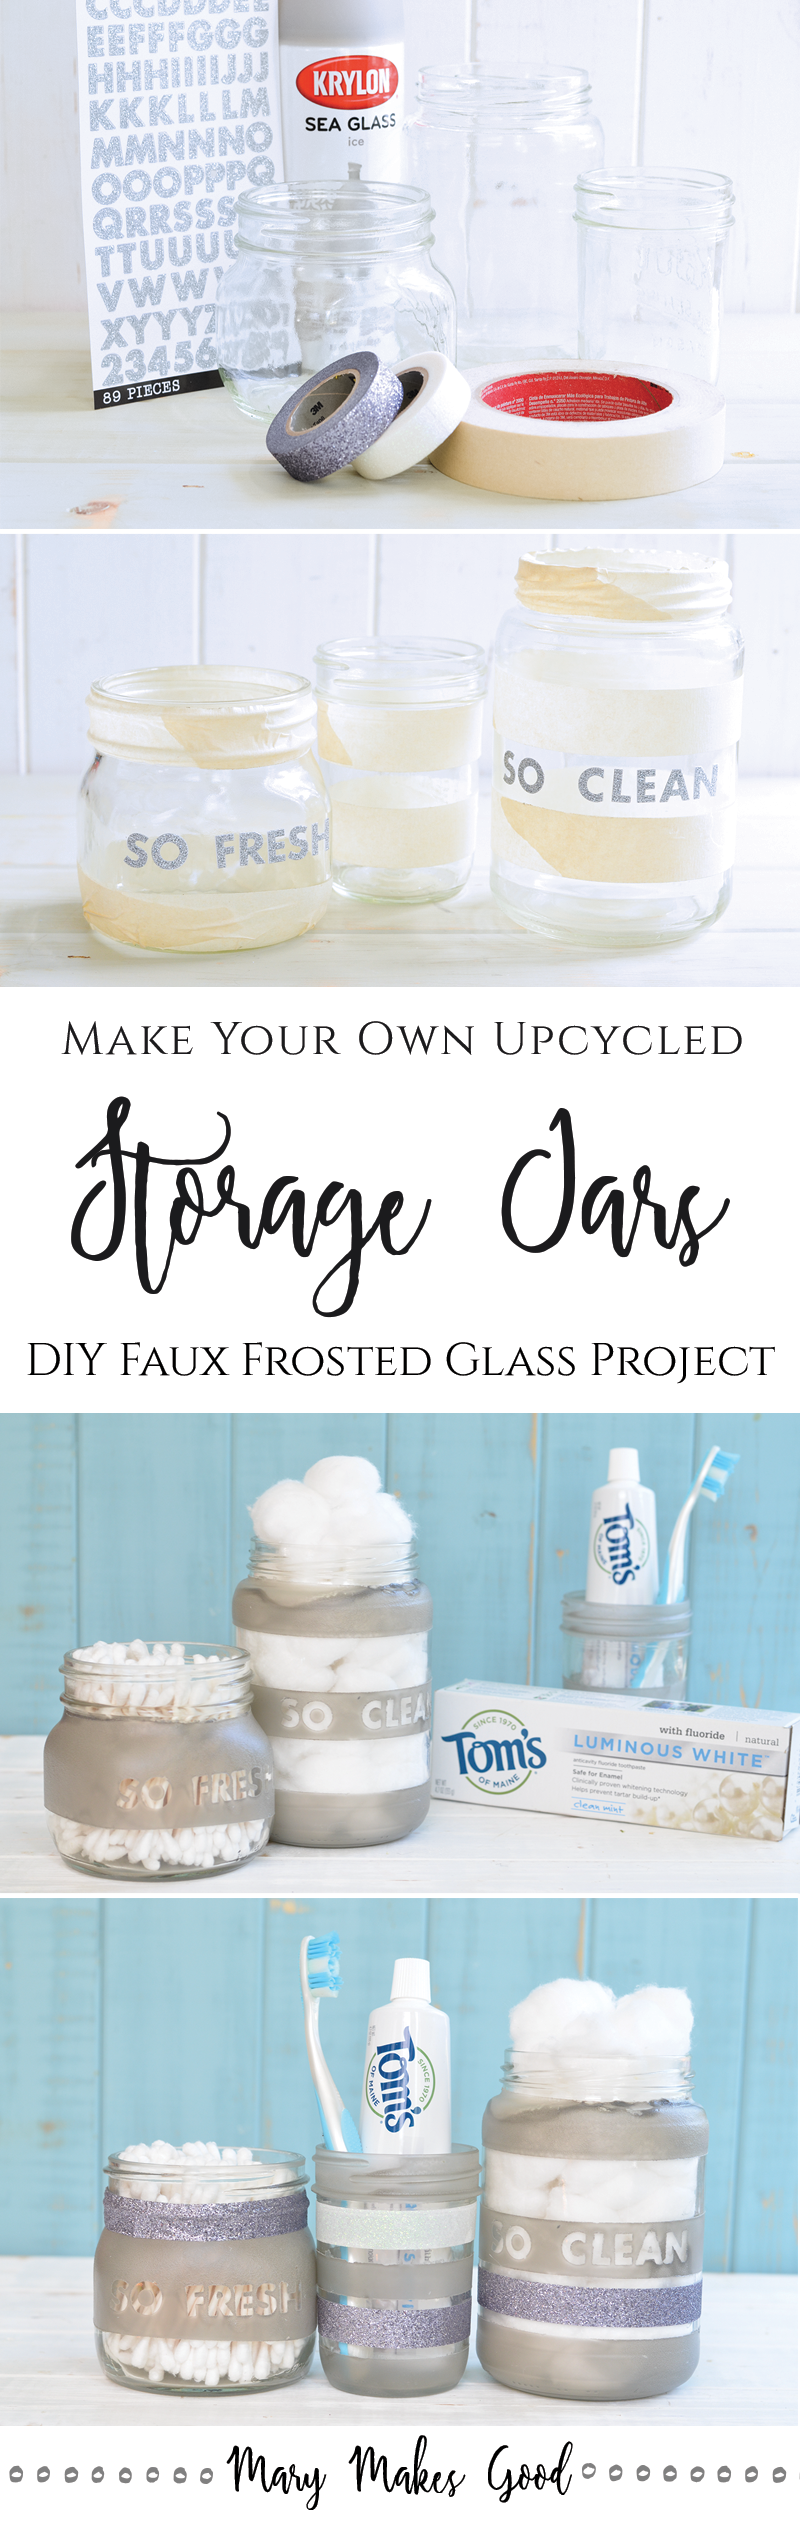 DIY Frosted Upycyled Glass Bathroom Storage Jars  sc 1 st  Mary Makes Good & Make Your Own Upcycled Bathroom Storage Jars » Mary Makes Good